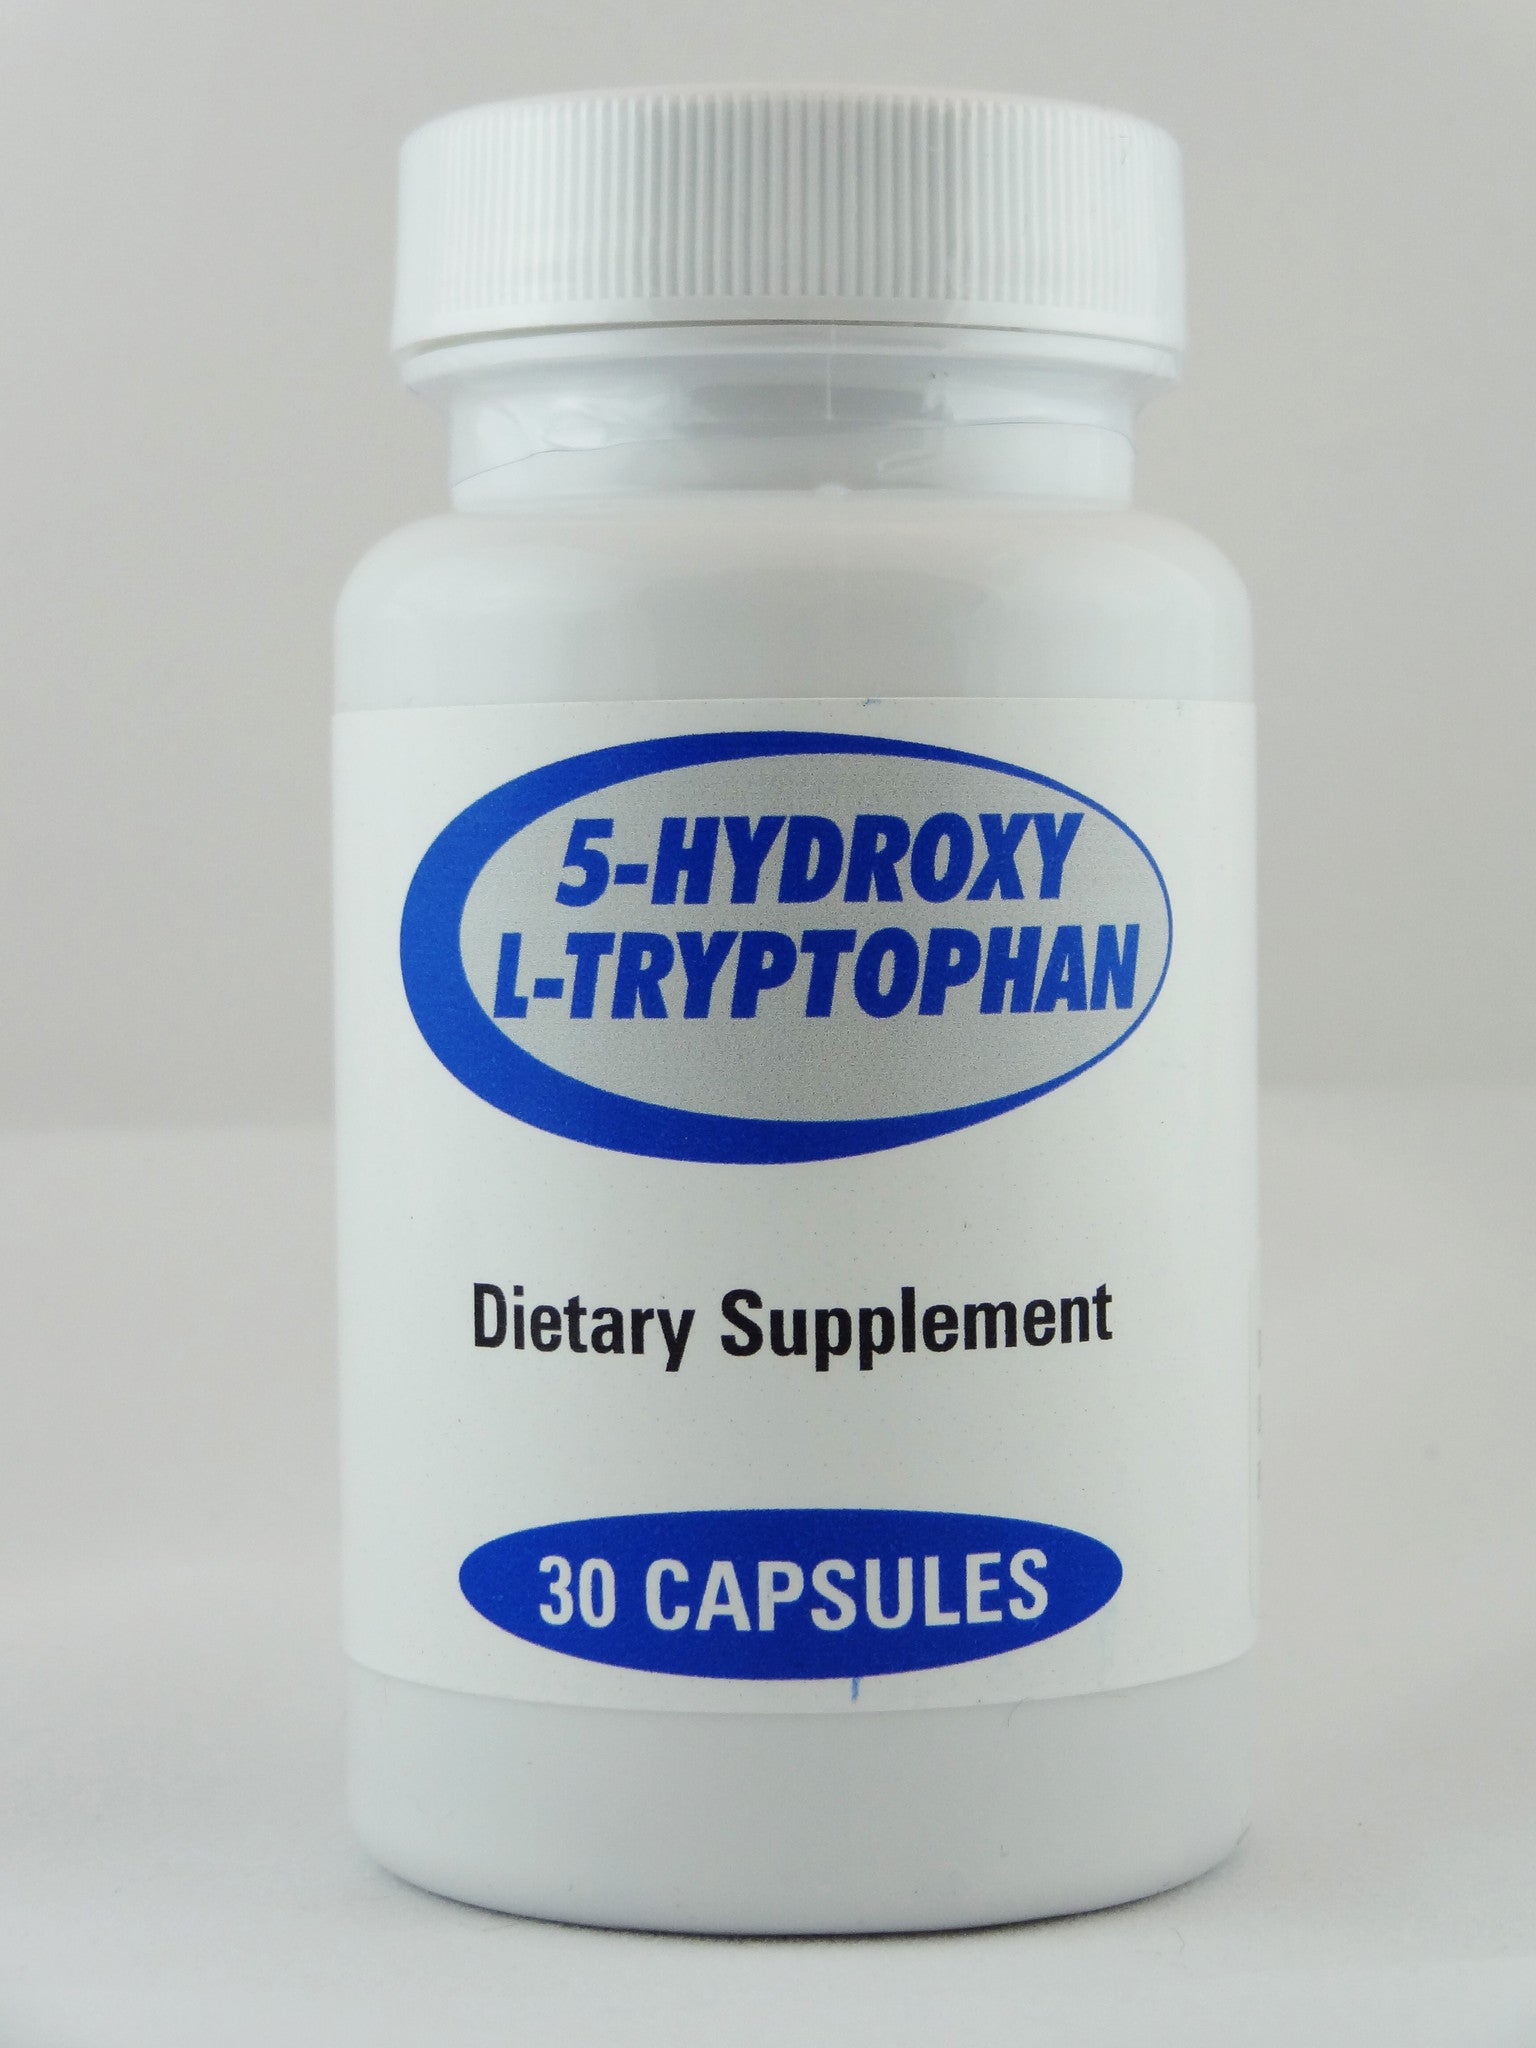 5 Hydroxy L-Tryptophan